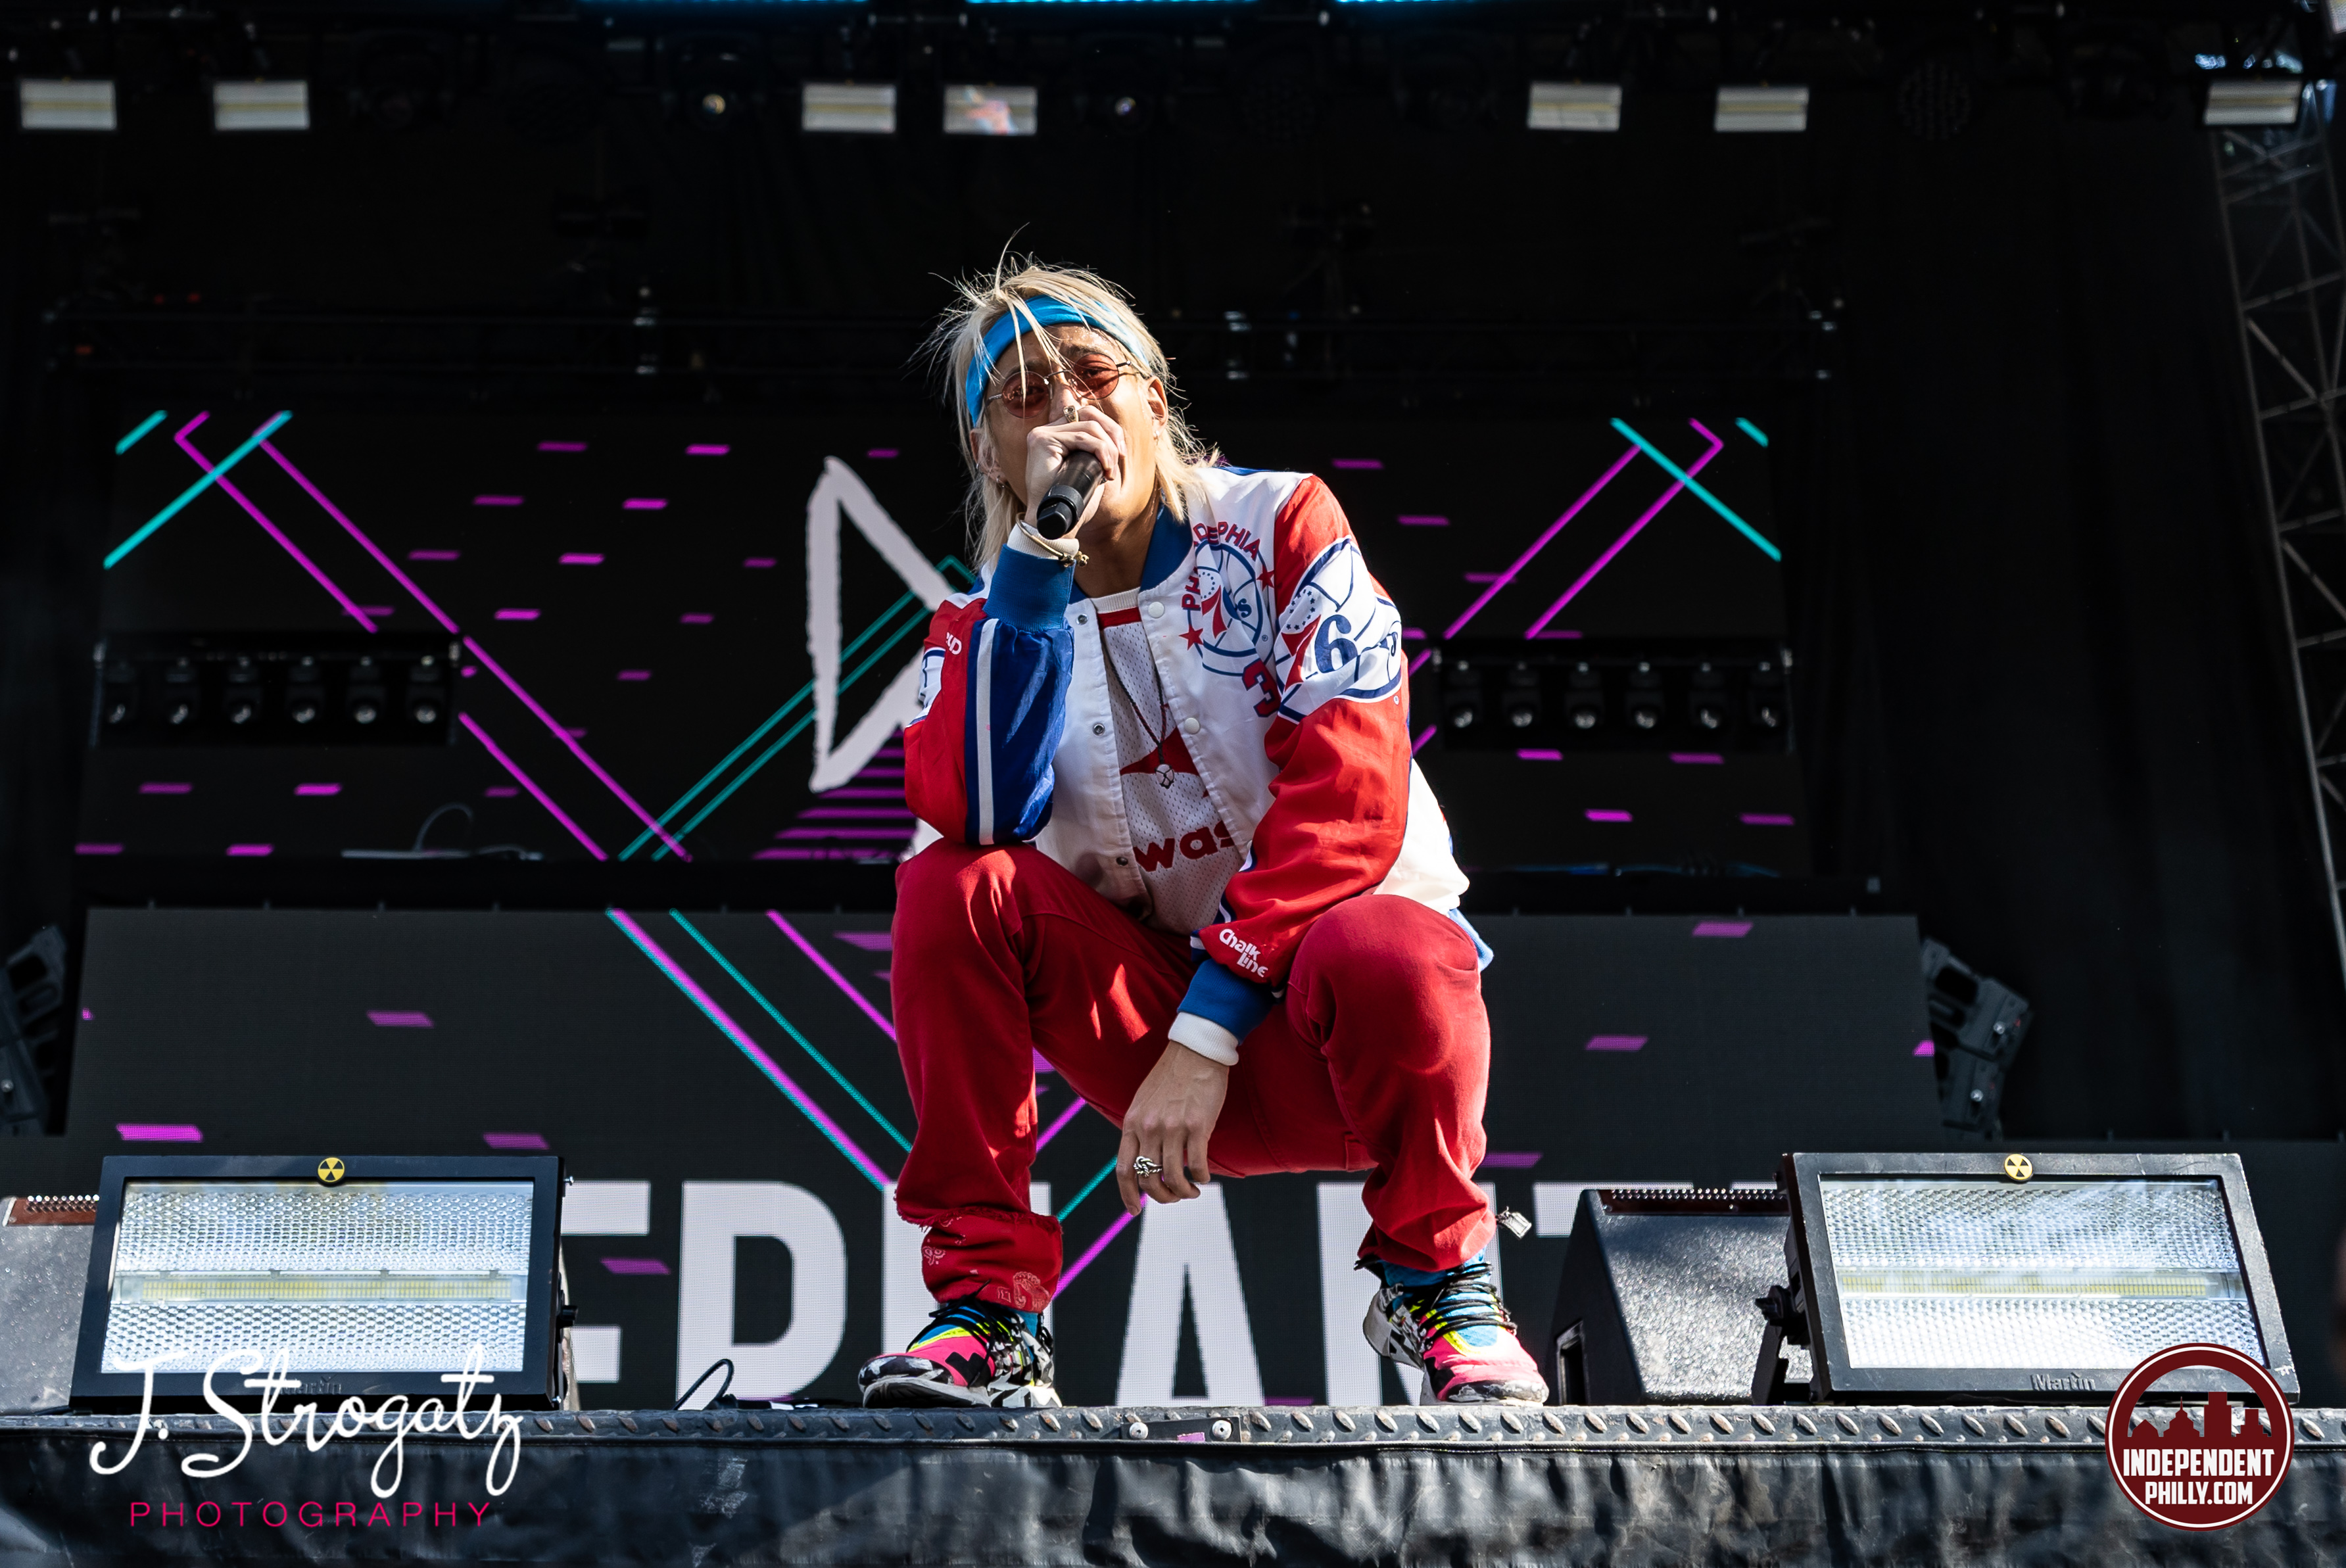 Electronic Music artist Elephante at Made In America Festival photo by Jen Strogatz